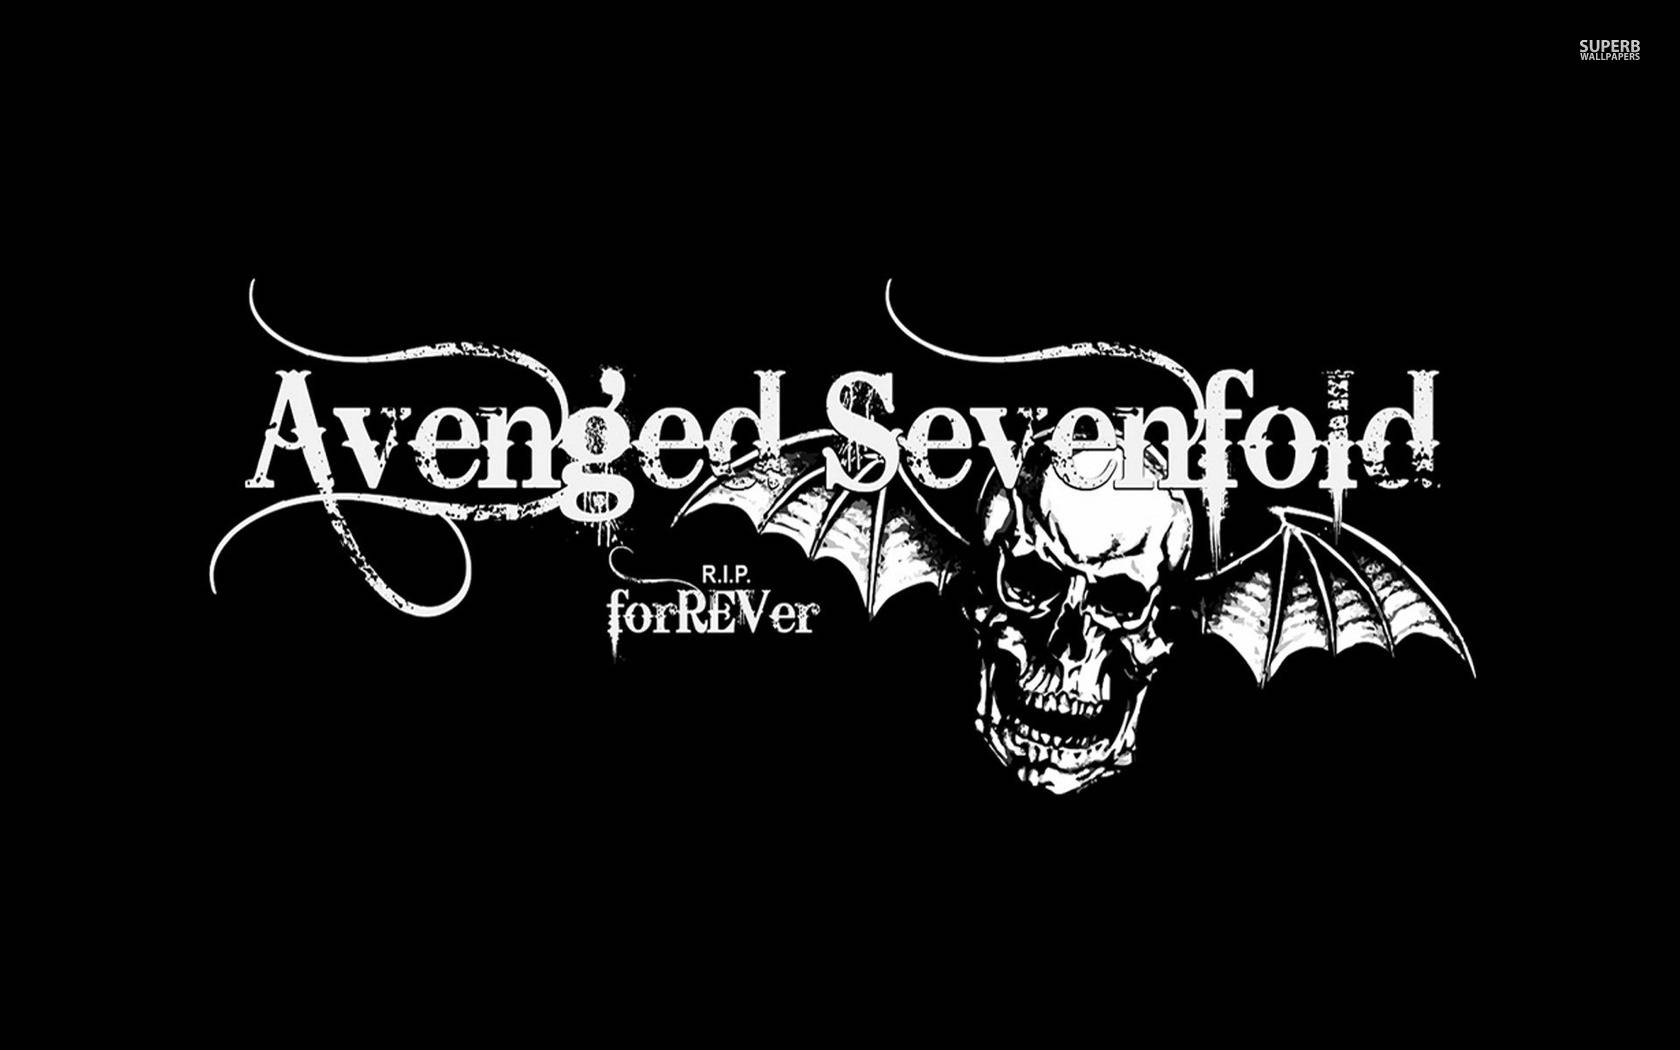 Avenged Sevenfold 2015 Wallpapers